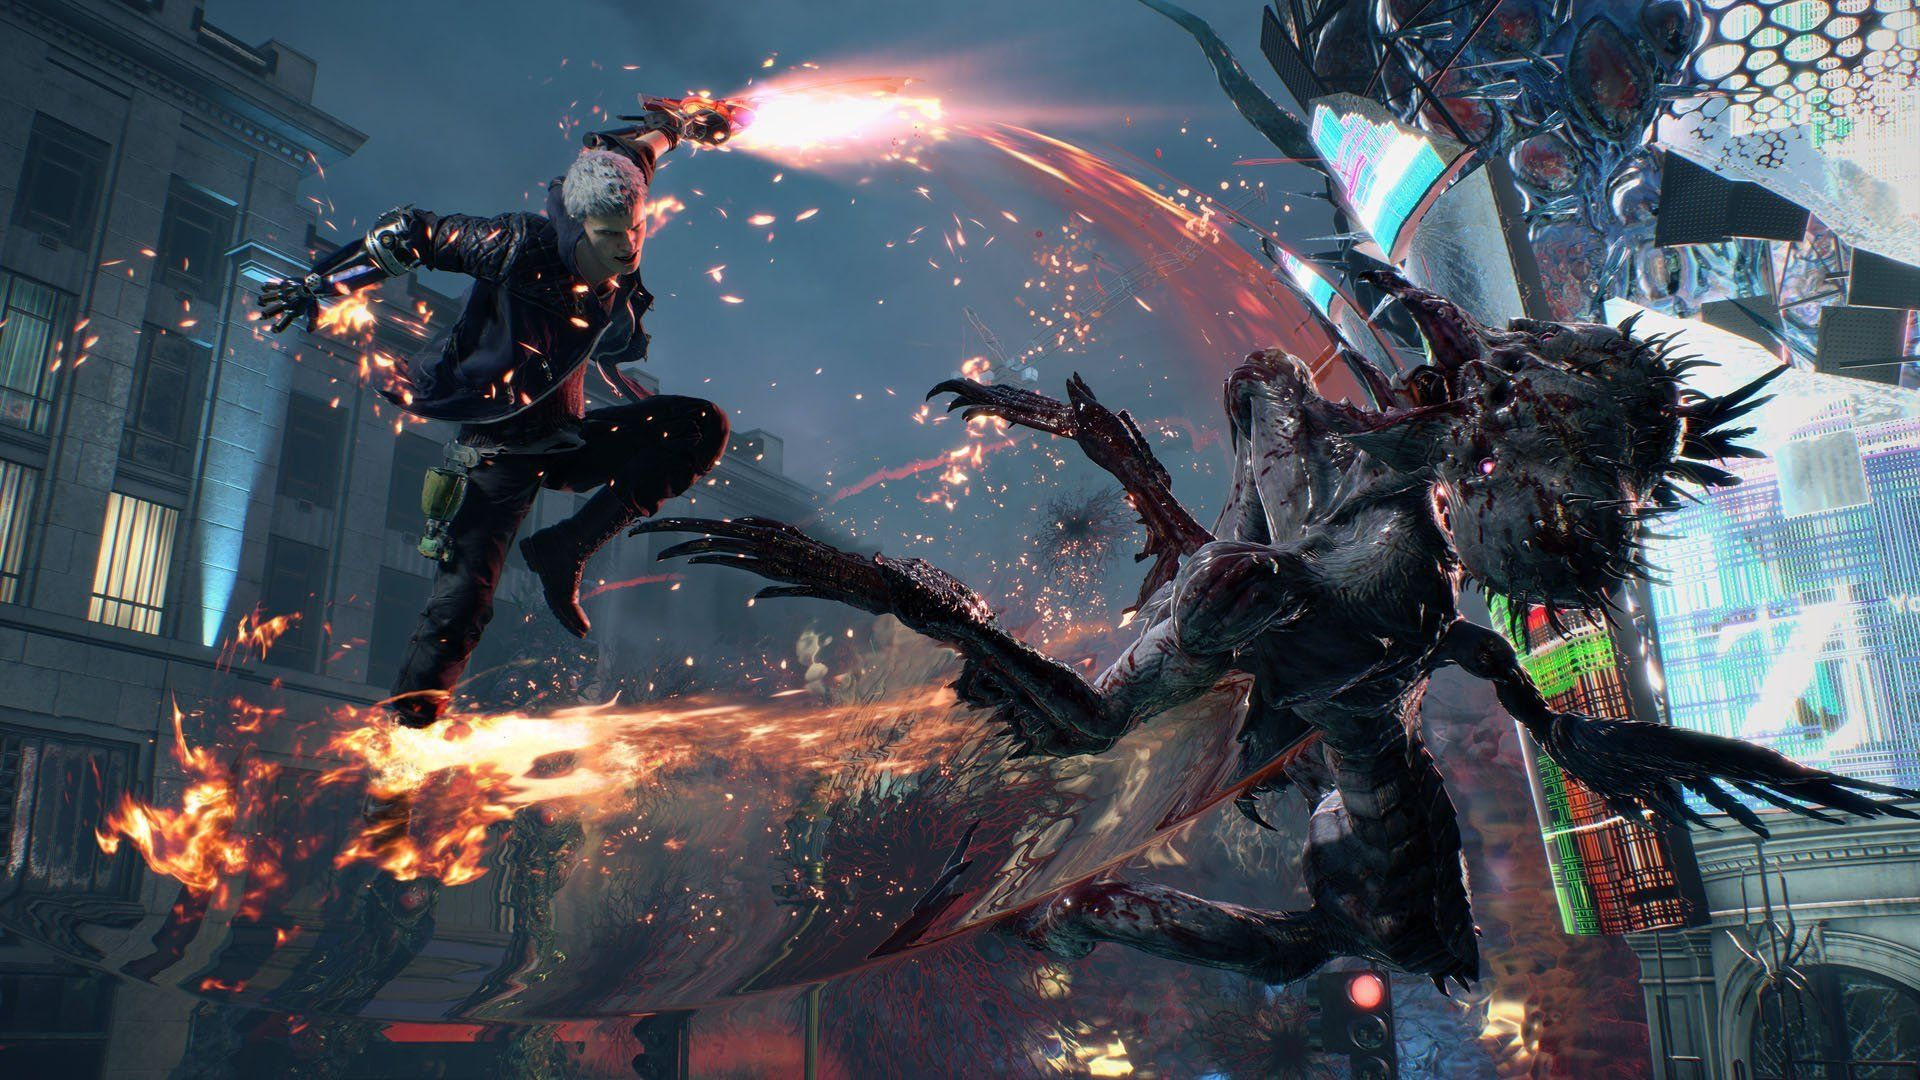 Pin On Devil May Cry Devil may cry 4 wallpaper hd 1080p